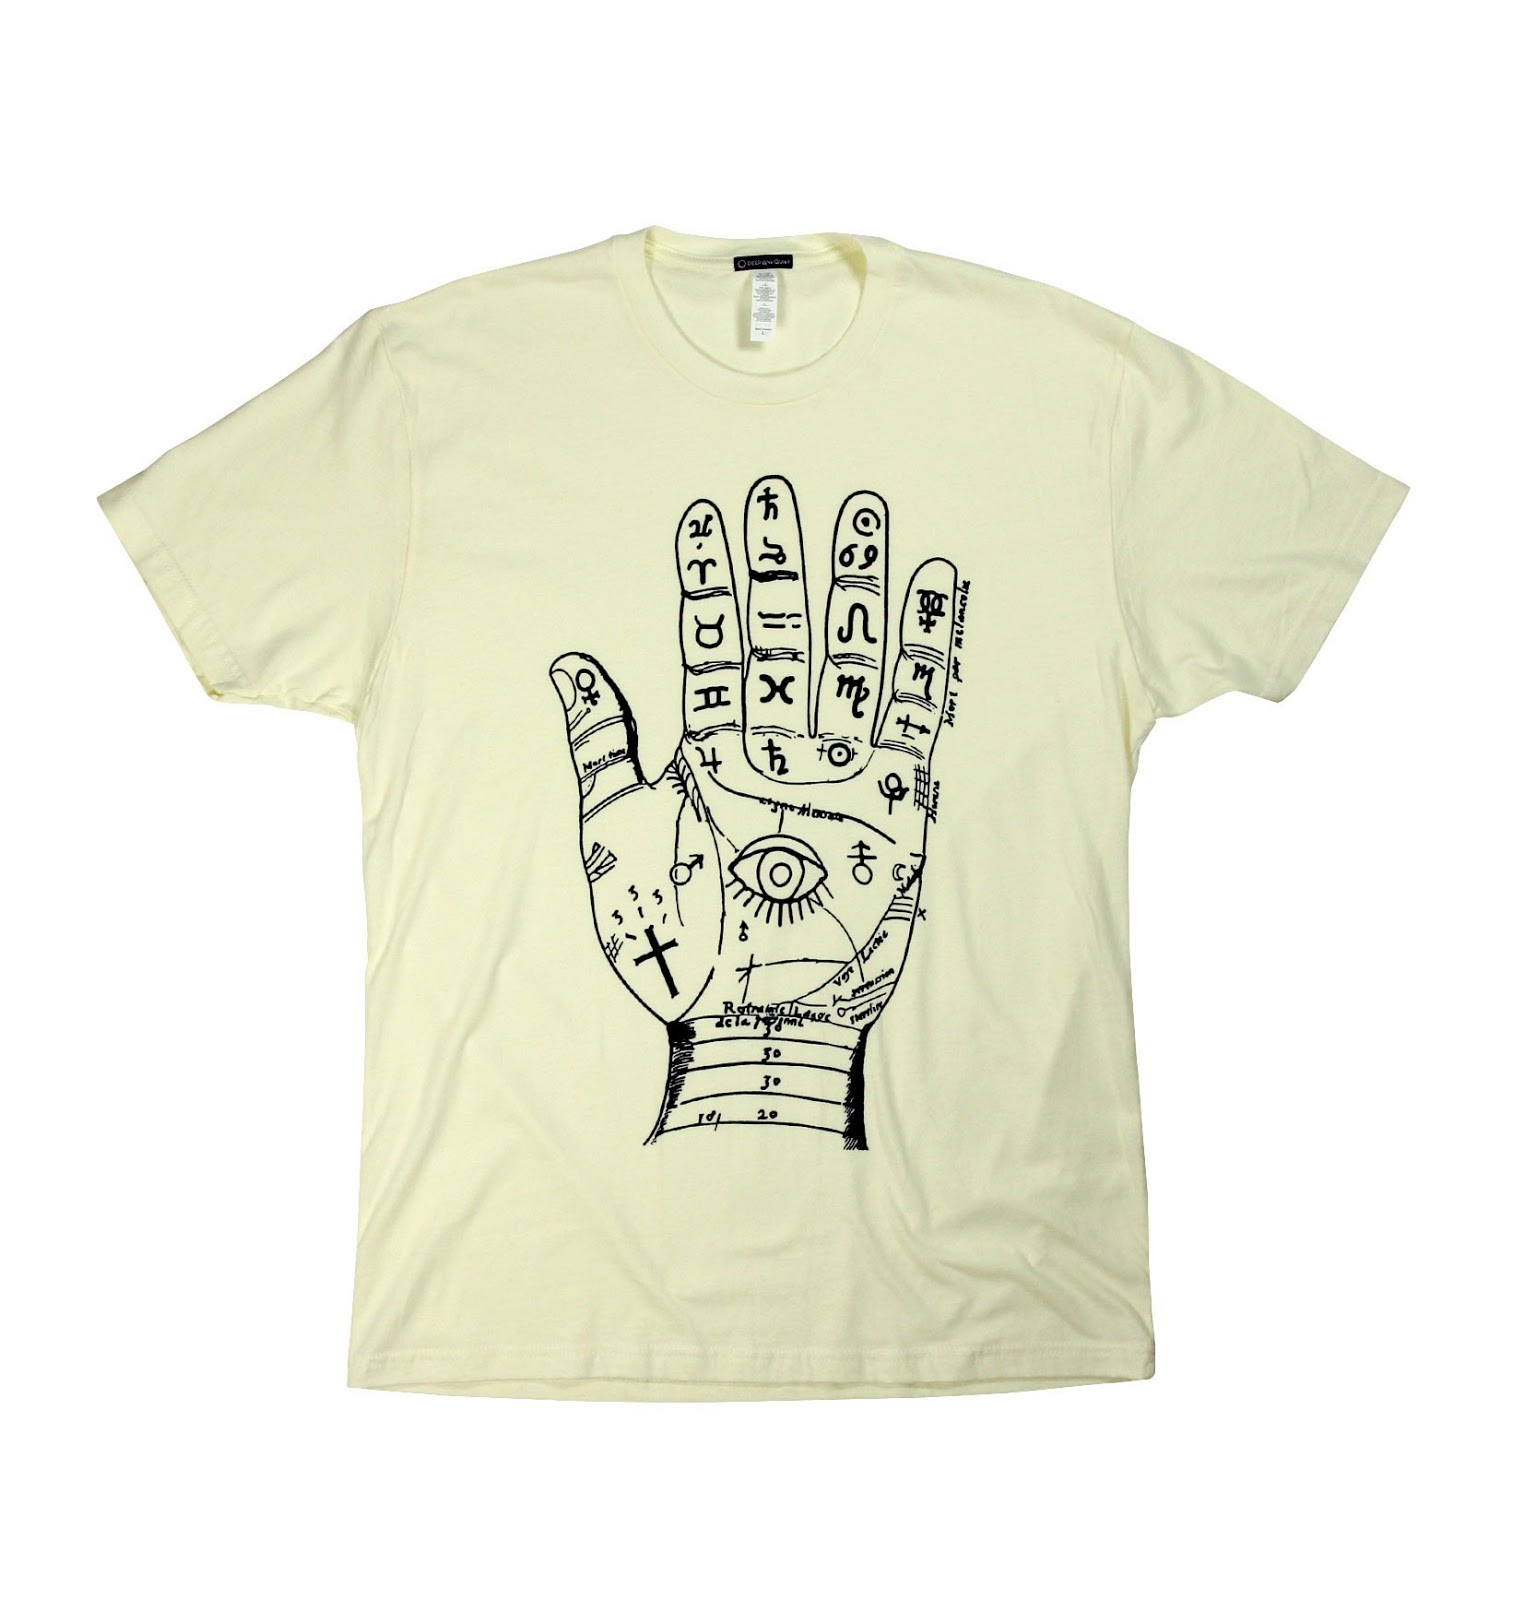 https://grafitee.es/s/camisetas/113-t-shirt-palm-reader-cream.html